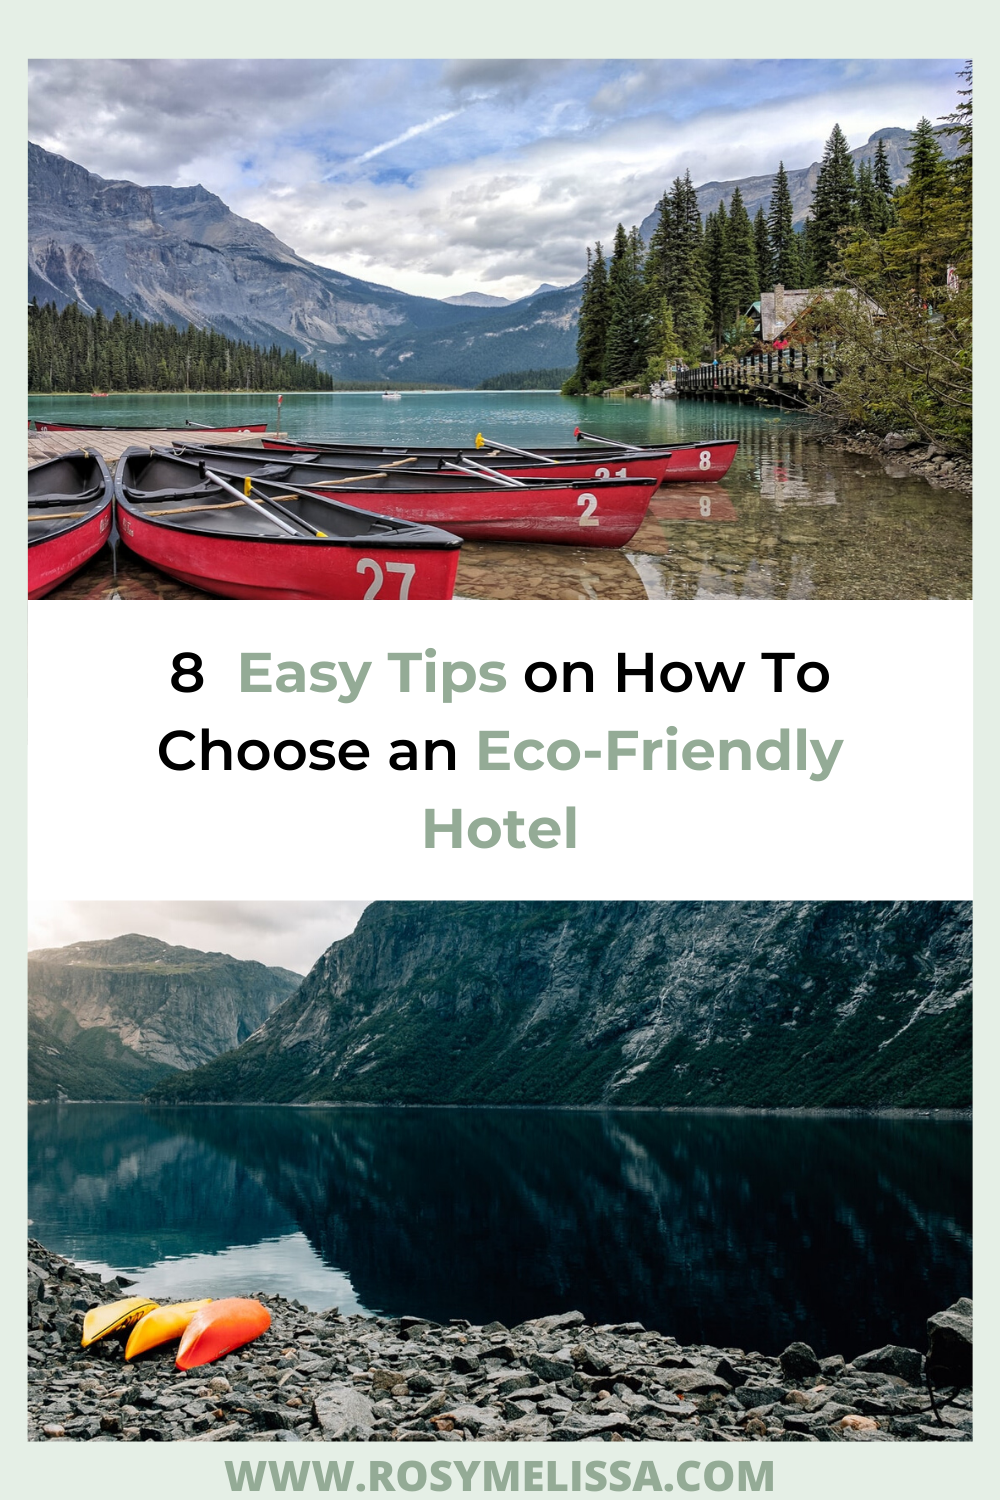 sustainable travel, eco friendly, responsible travel, 8 tips on how to choose an eco-friendly hotel, where to go, where to stay, tips, travel tips